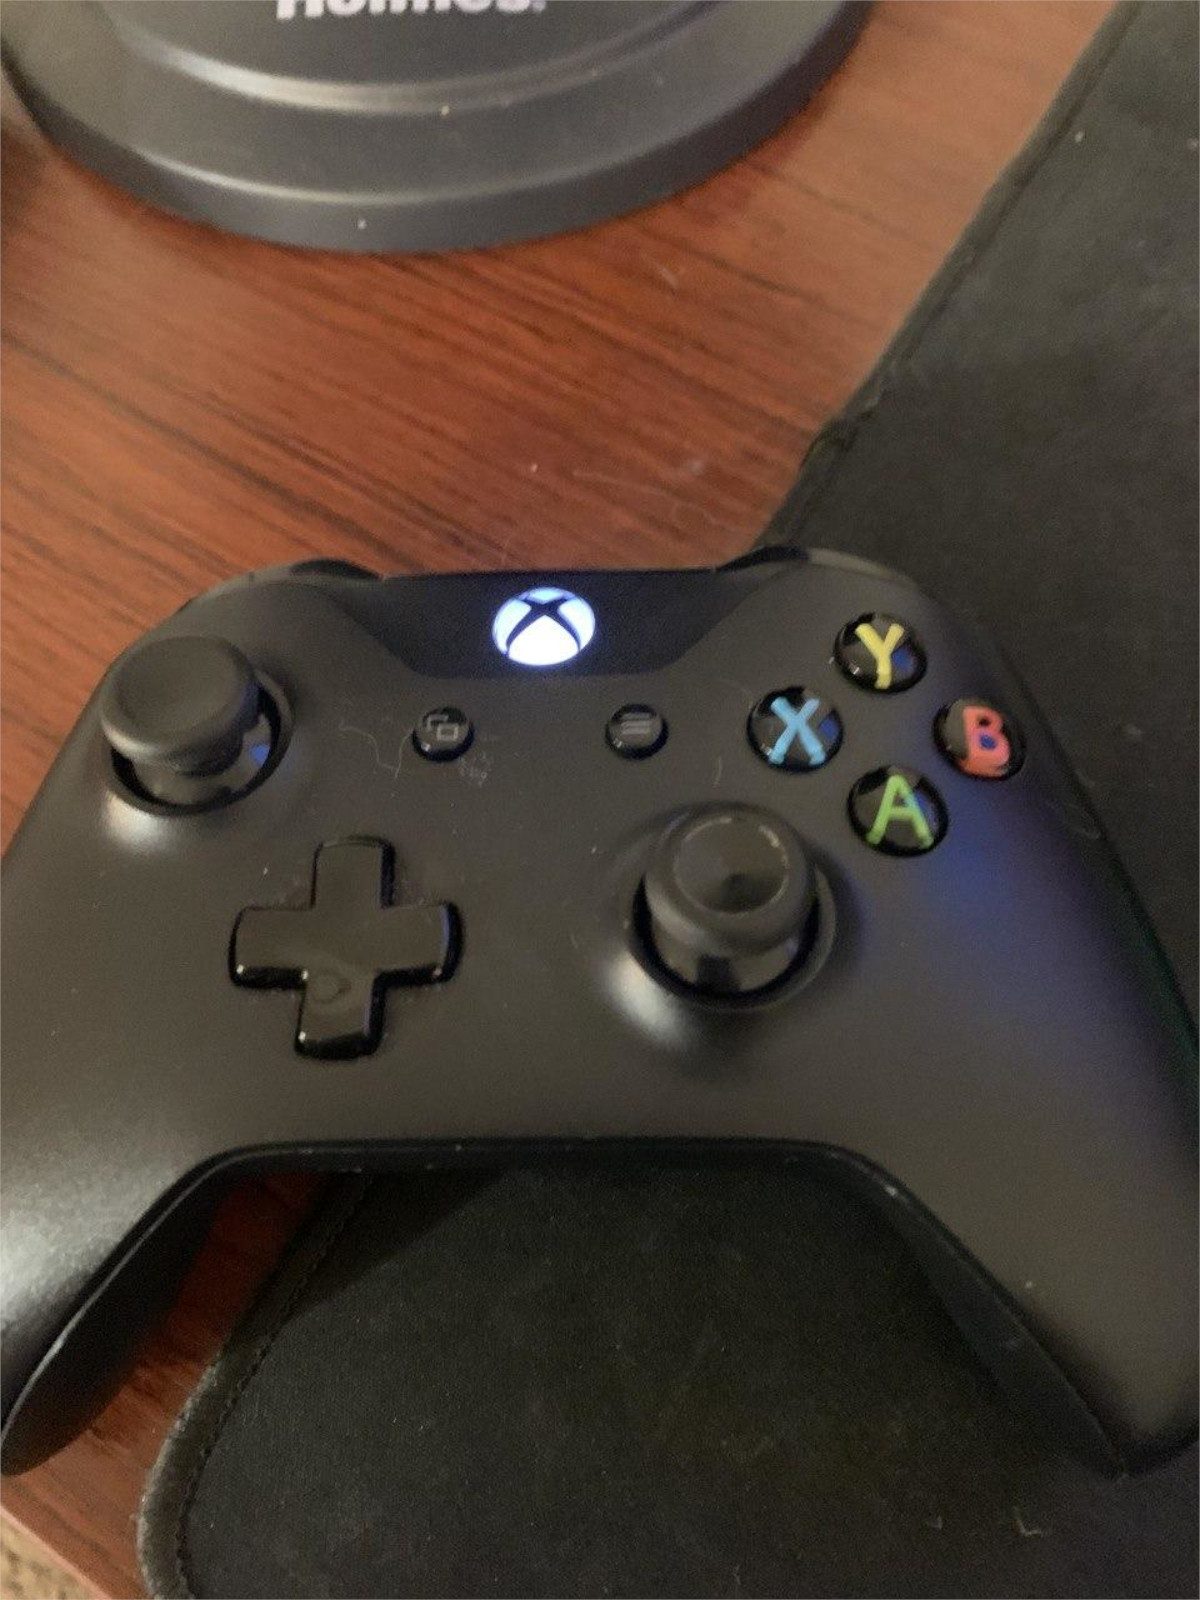 how to use xbox one controllers over bluetooth on How to use Xbox One controllers over Bluetooth on Linux